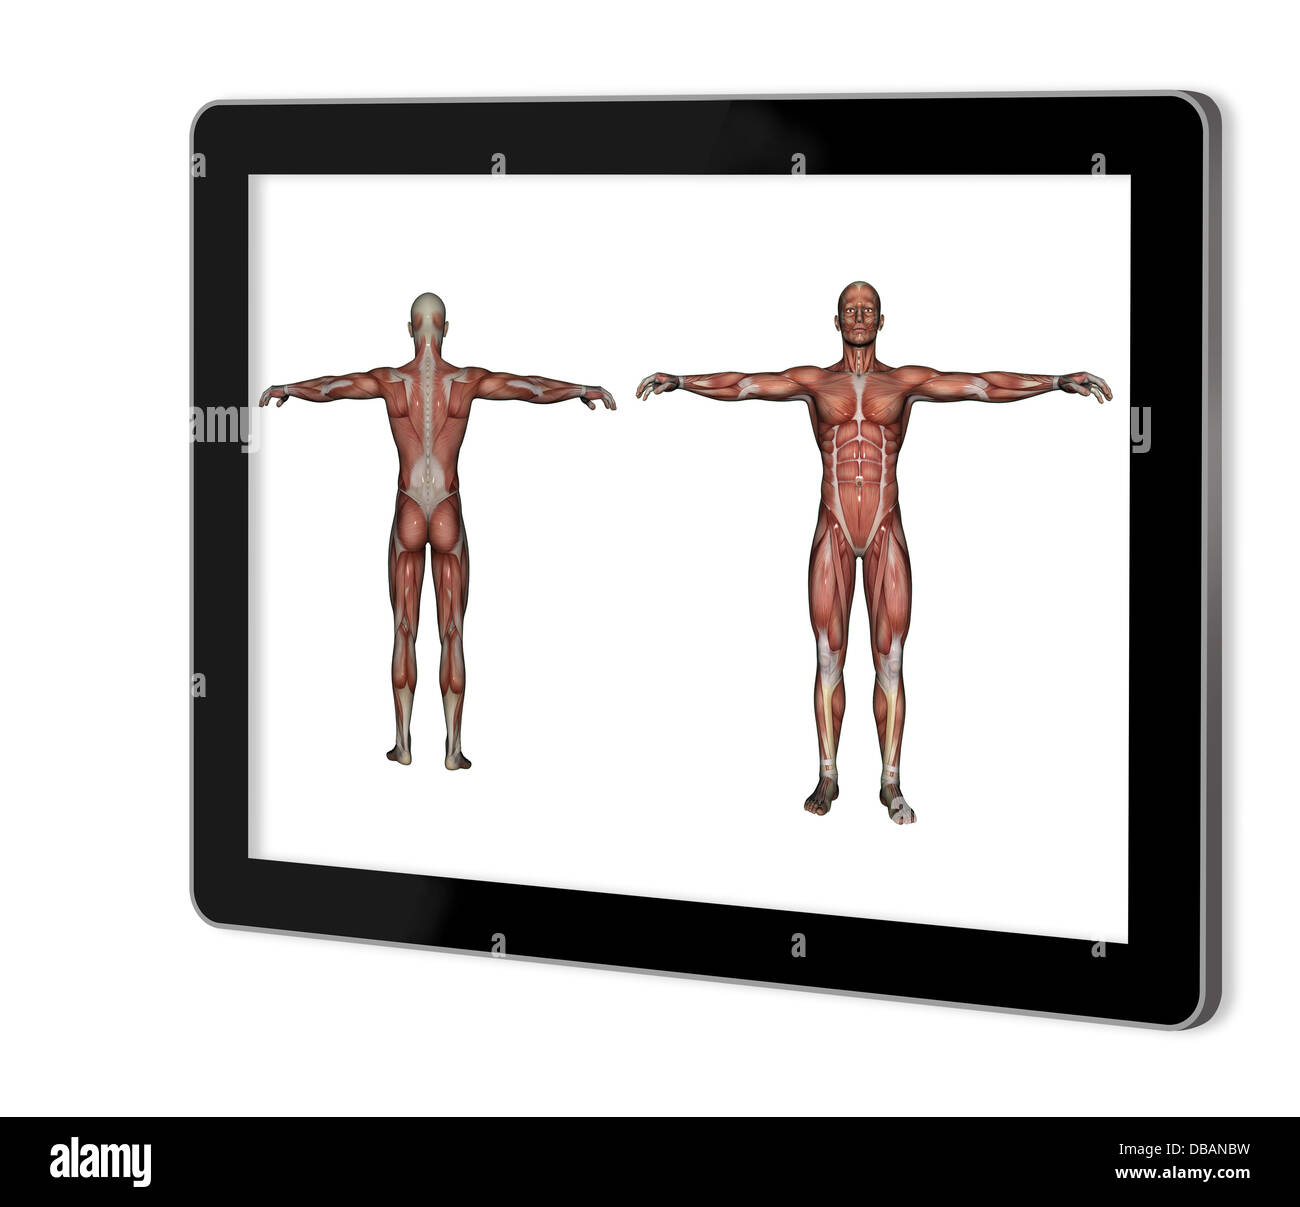 Human Anatomy - Male Muscles show on tablet made in 2d software ...